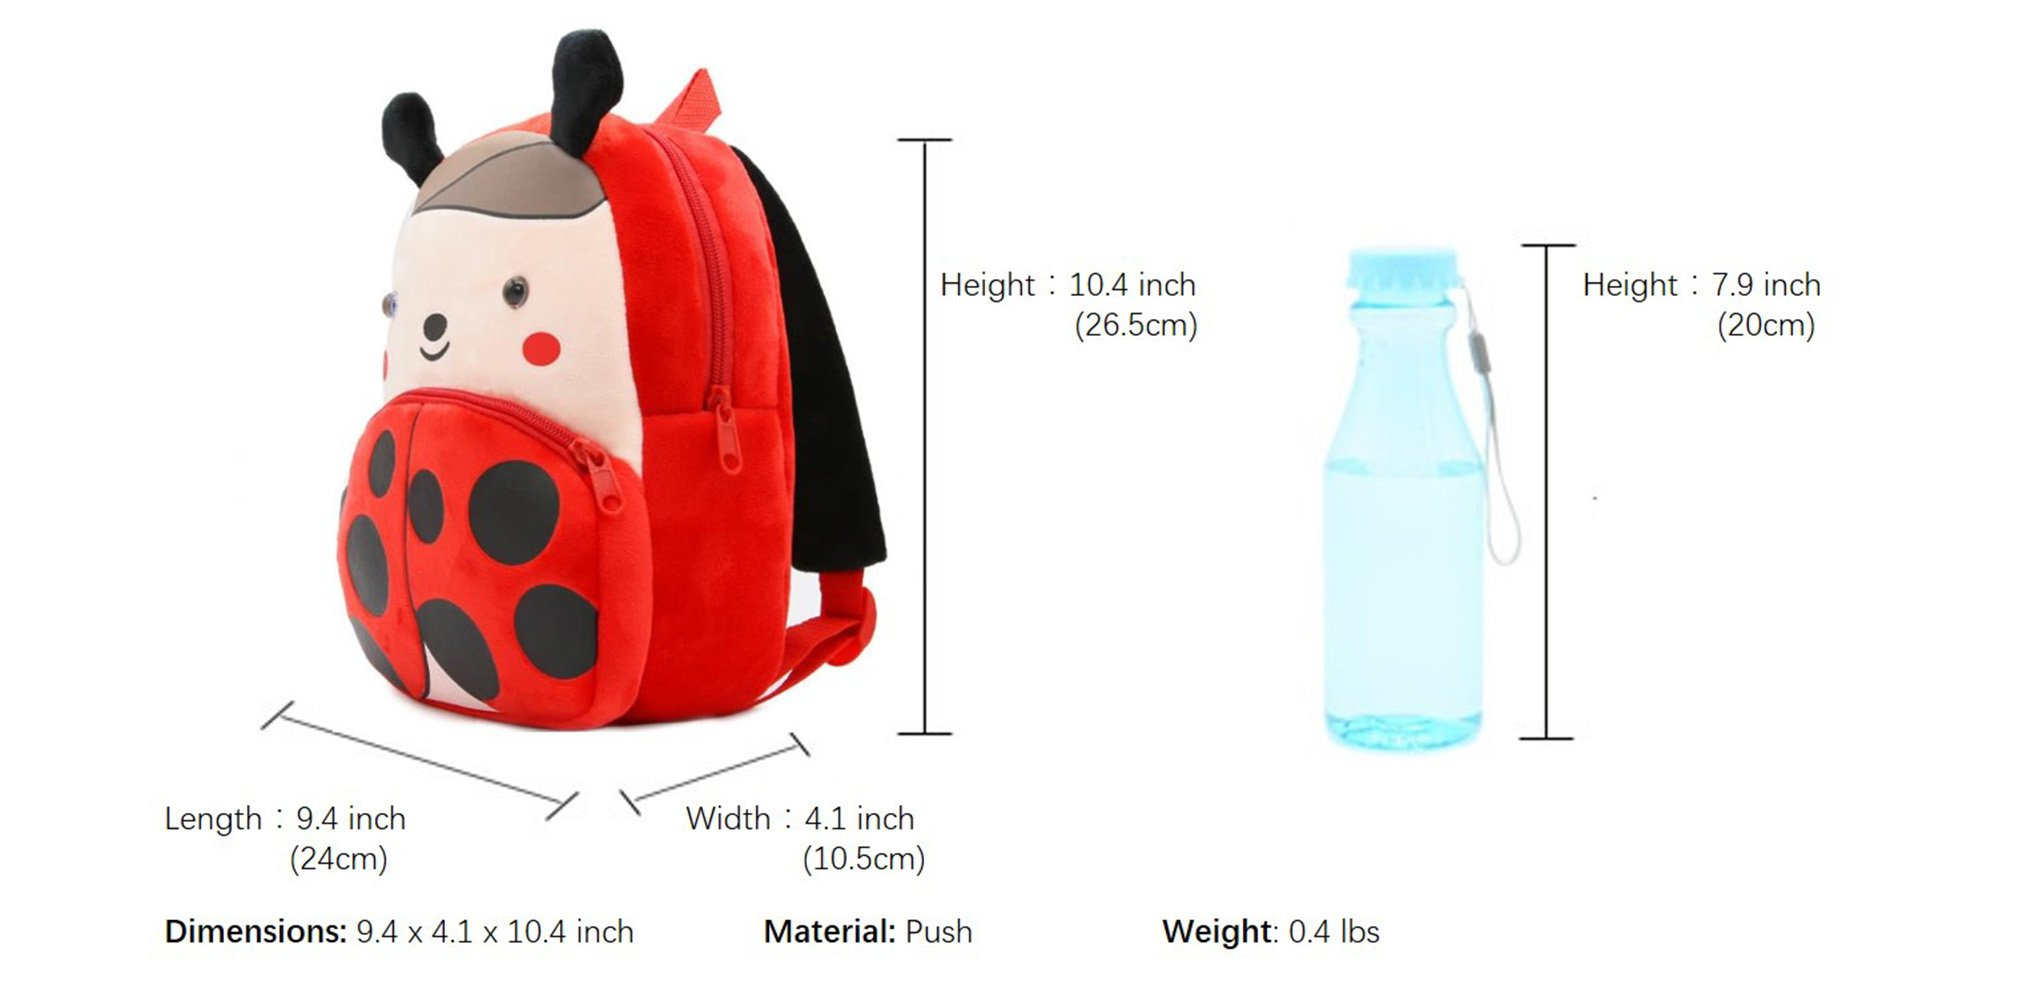 Cute Toddler Backpack Toddler Bag Plush Animal Cartoon Mini Travel Bag for Baby Girl Boy 1-6 Years (Beetle) by NICE CHOICE (Image #5)